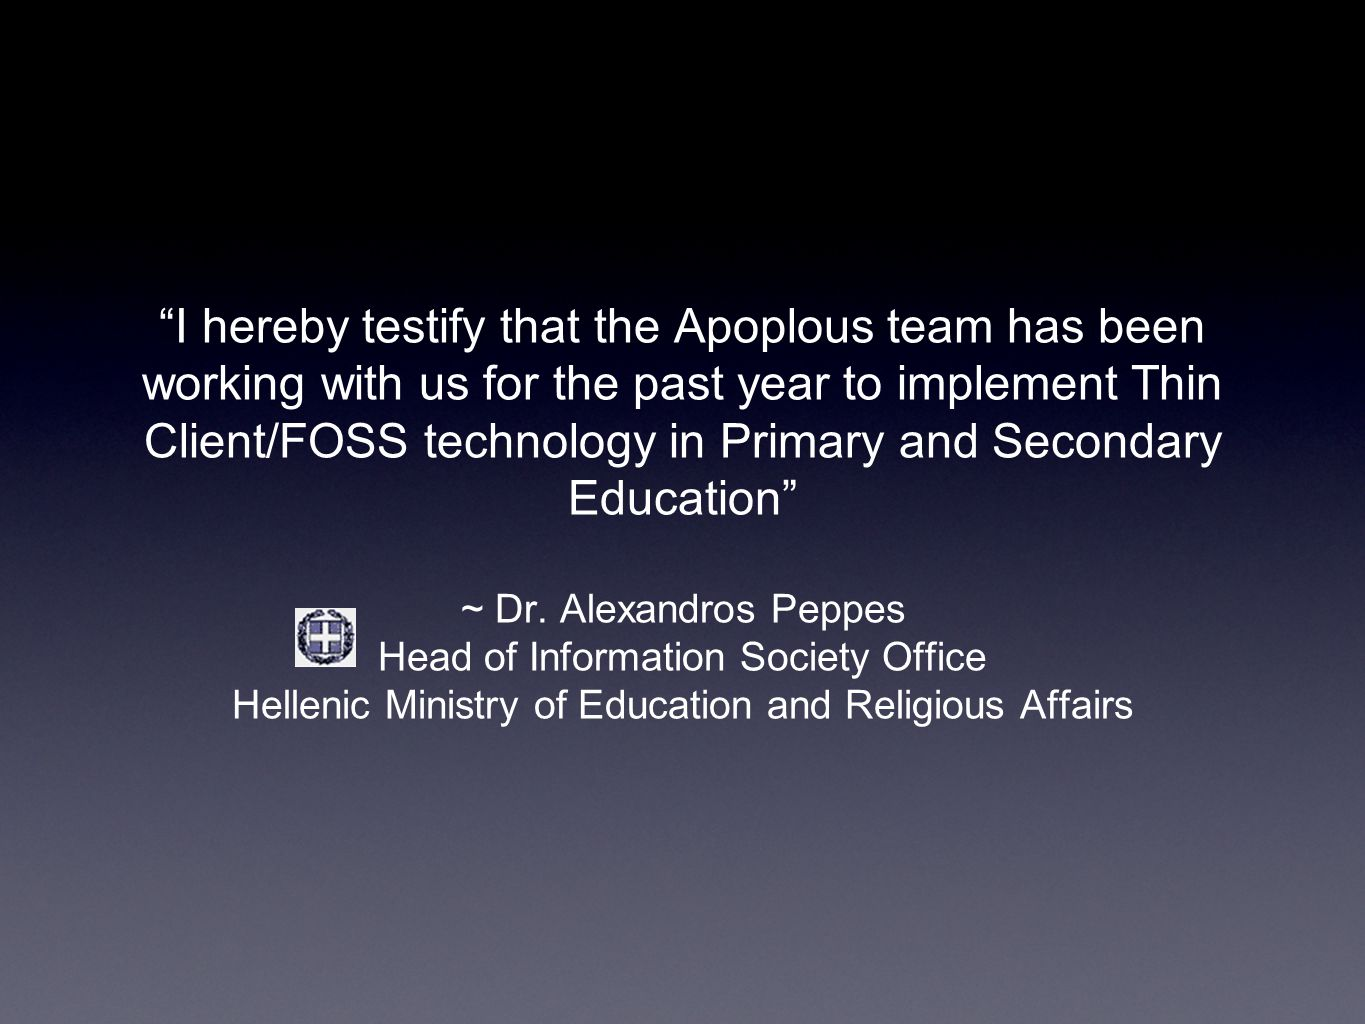 I hereby testify that the Apoplous team has been working with us for the past year to implement Thin Client/FOSS technology in Primary and Secondary Education ~ Dr.